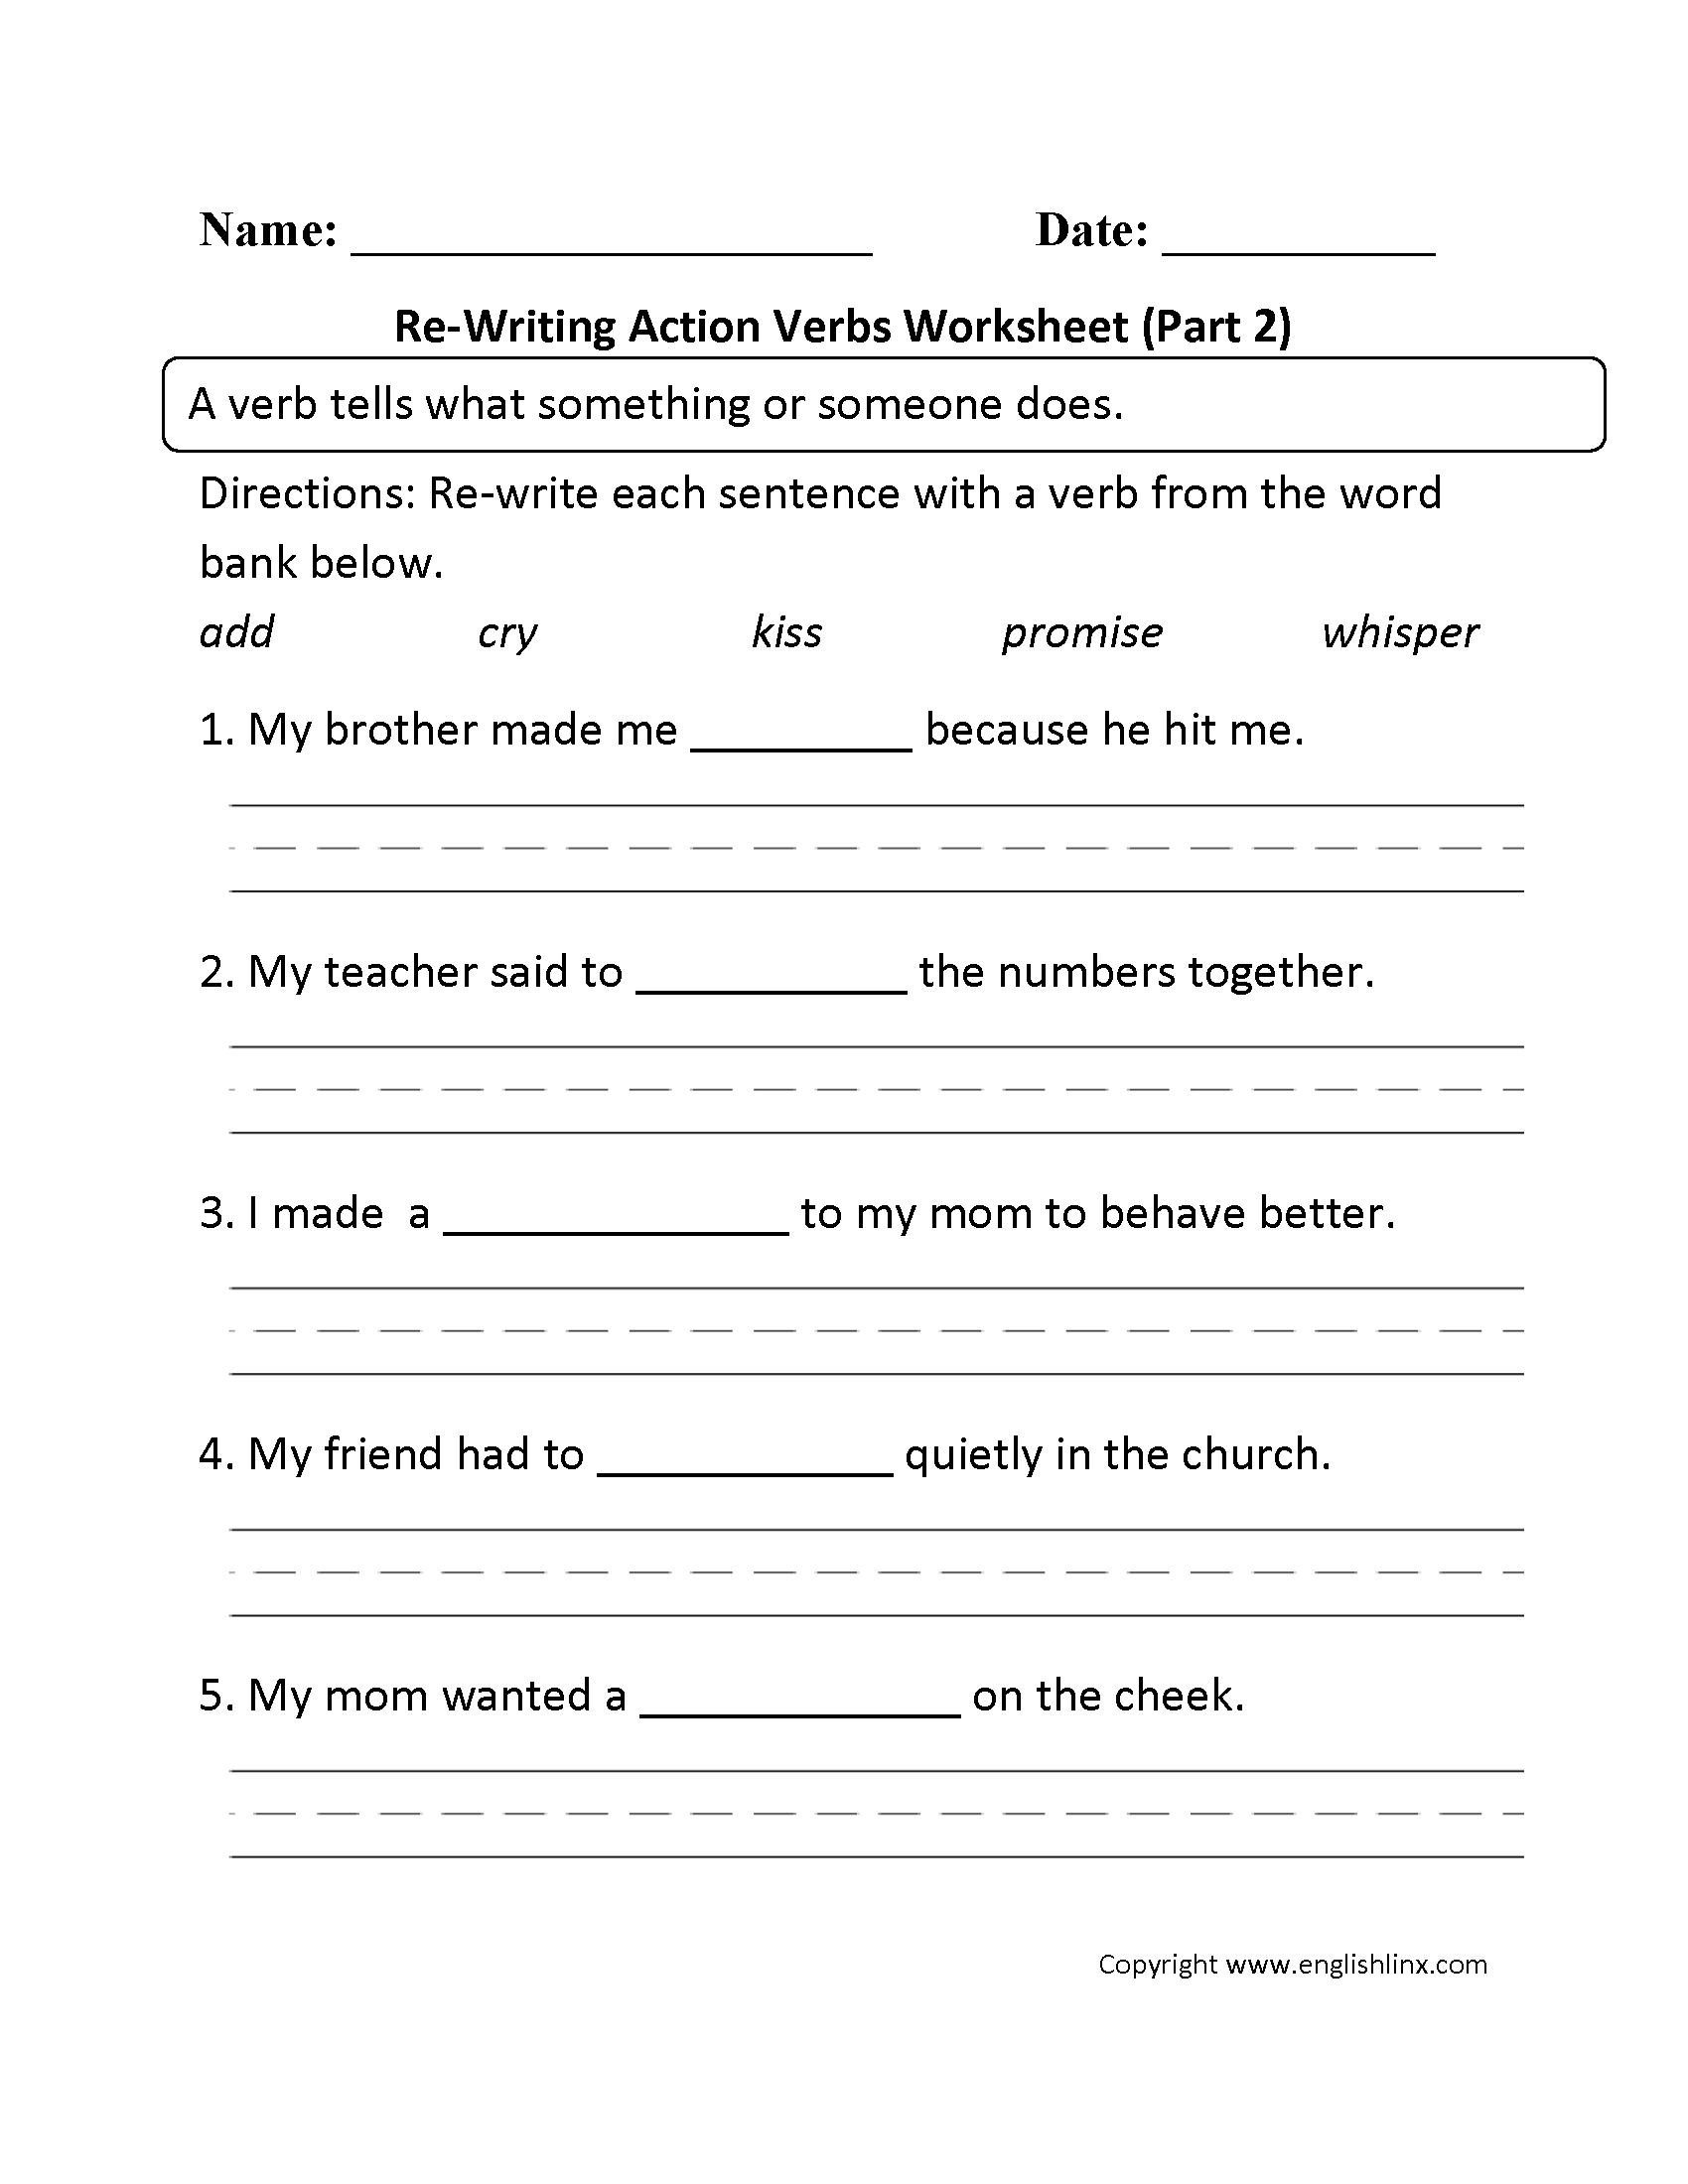 Re-Writing Action Verbs Worksheet Part 2   Action verbs worksheet [ 2200 x 1700 Pixel ]